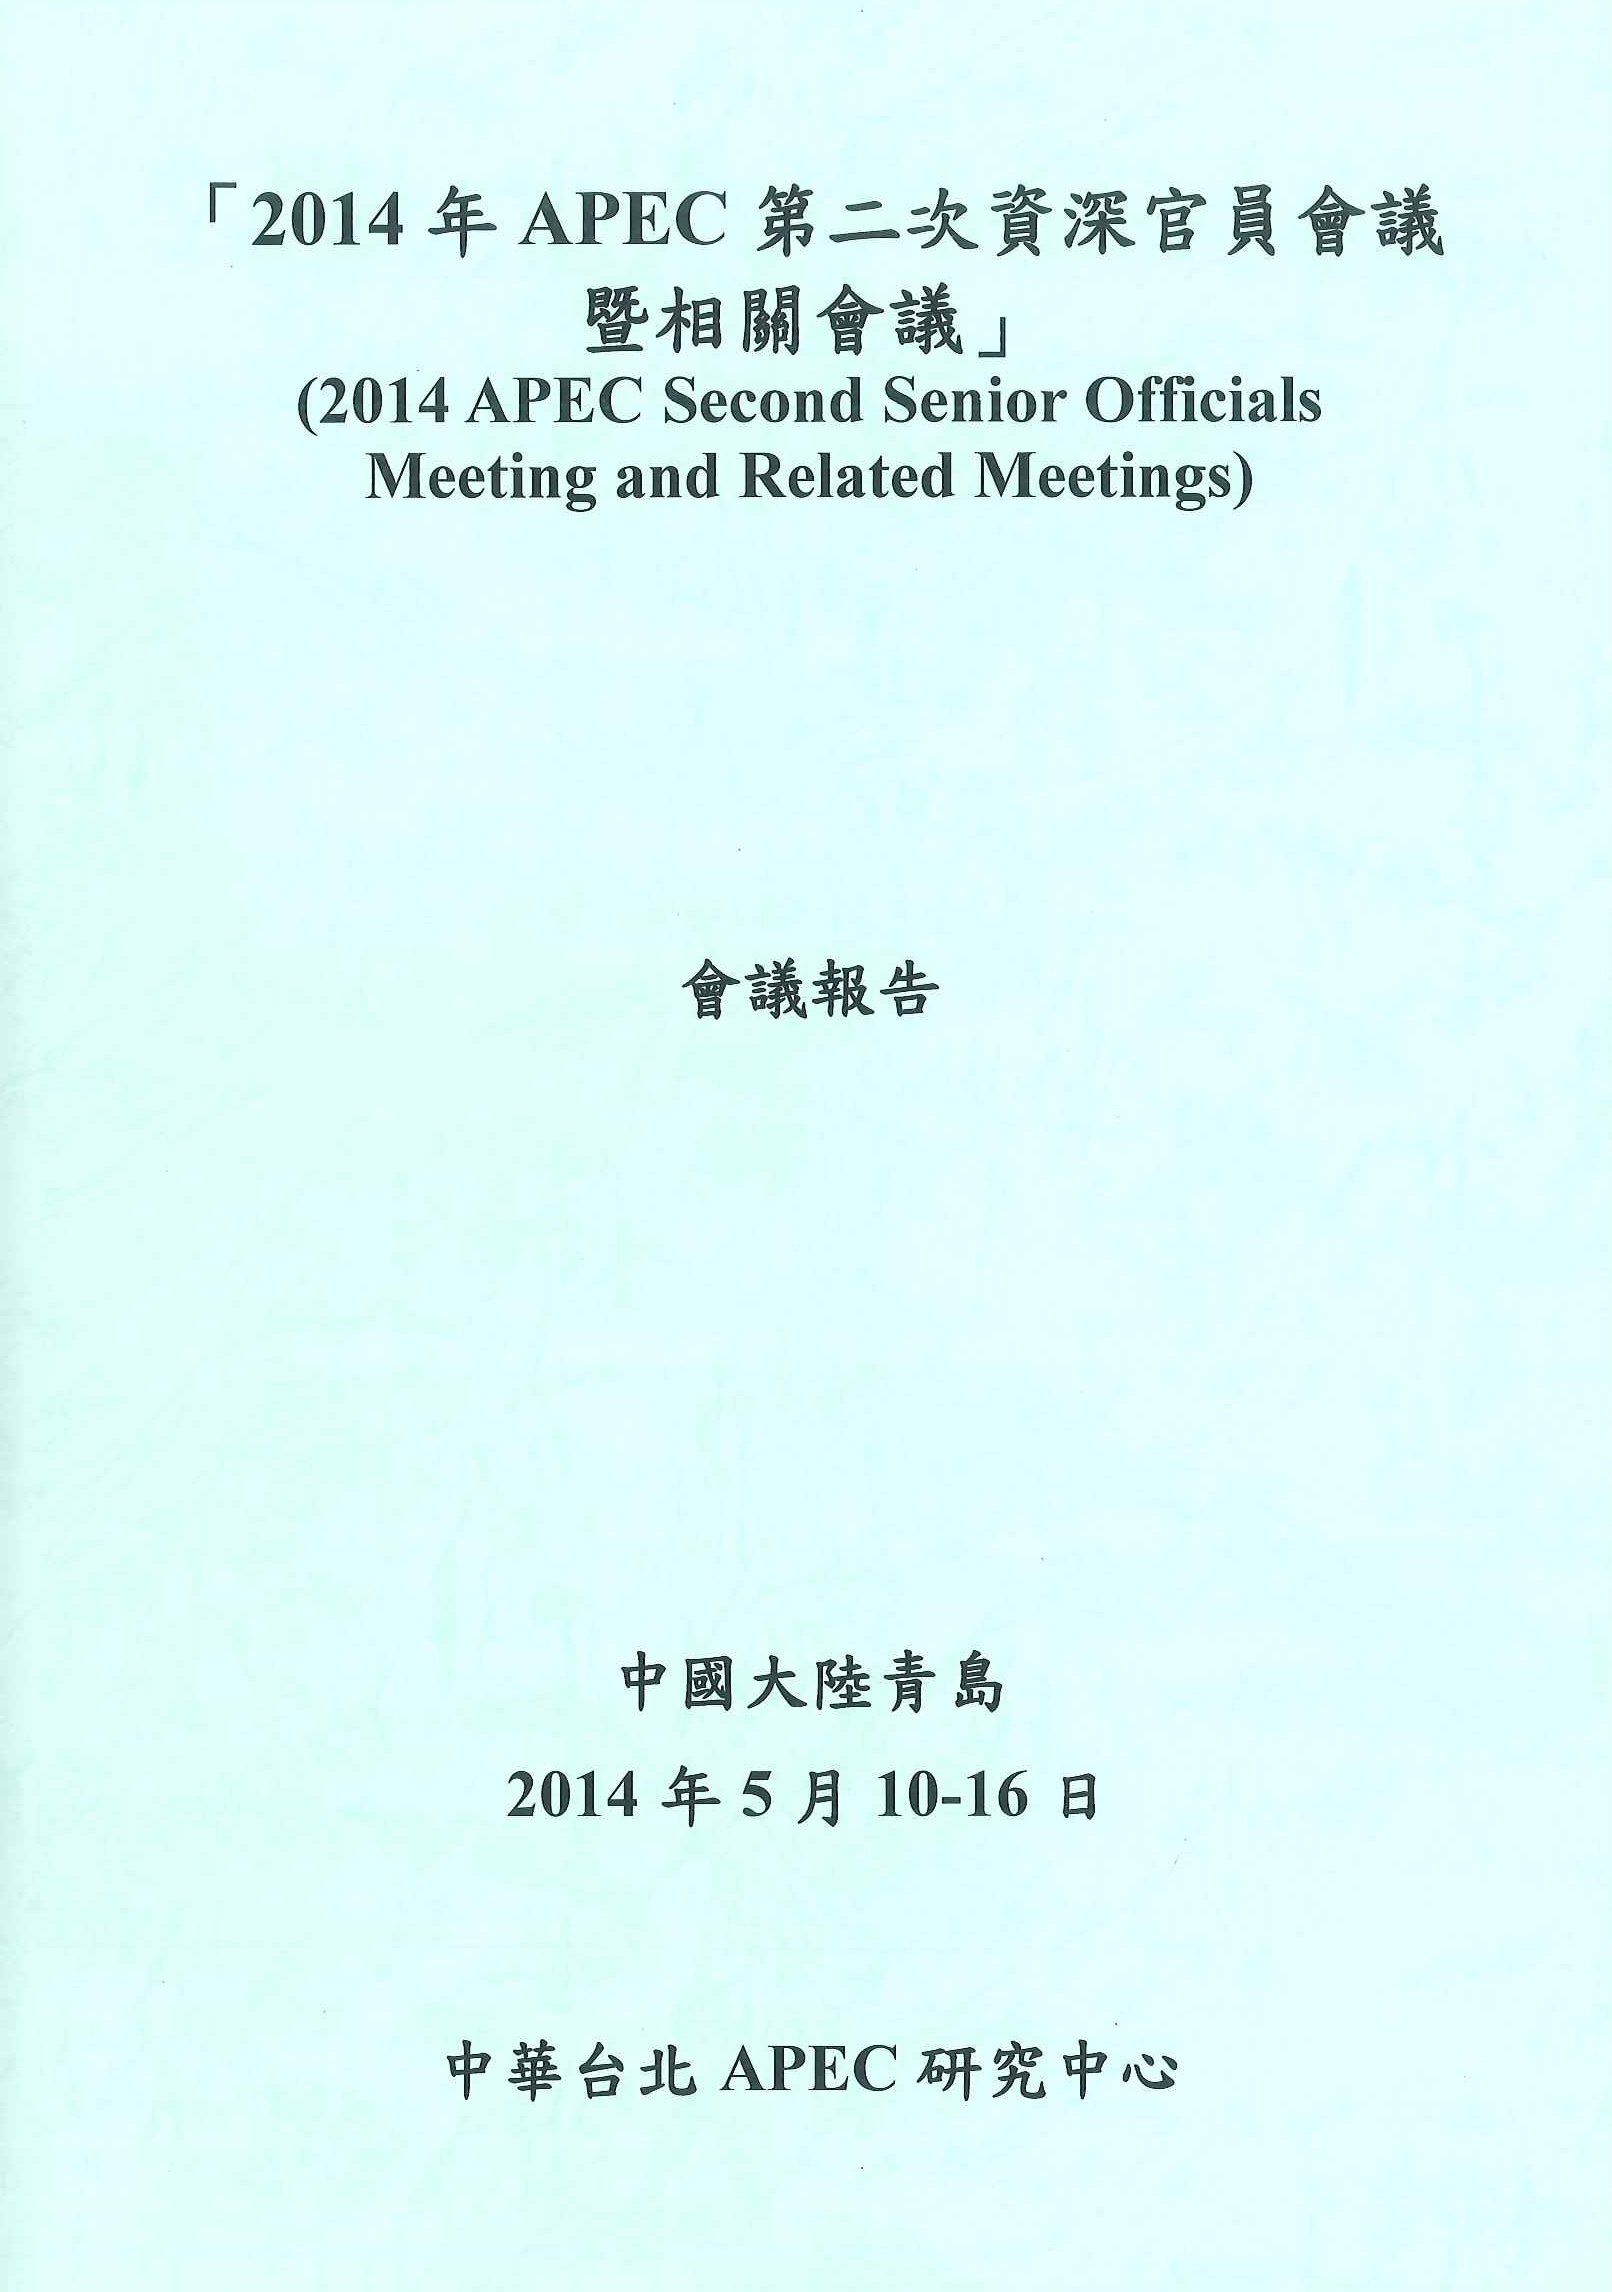 「2014年APEC第二次資深官員會議暨相關會議」會議報告=2014 APEC second senior officials meeting and related meetings